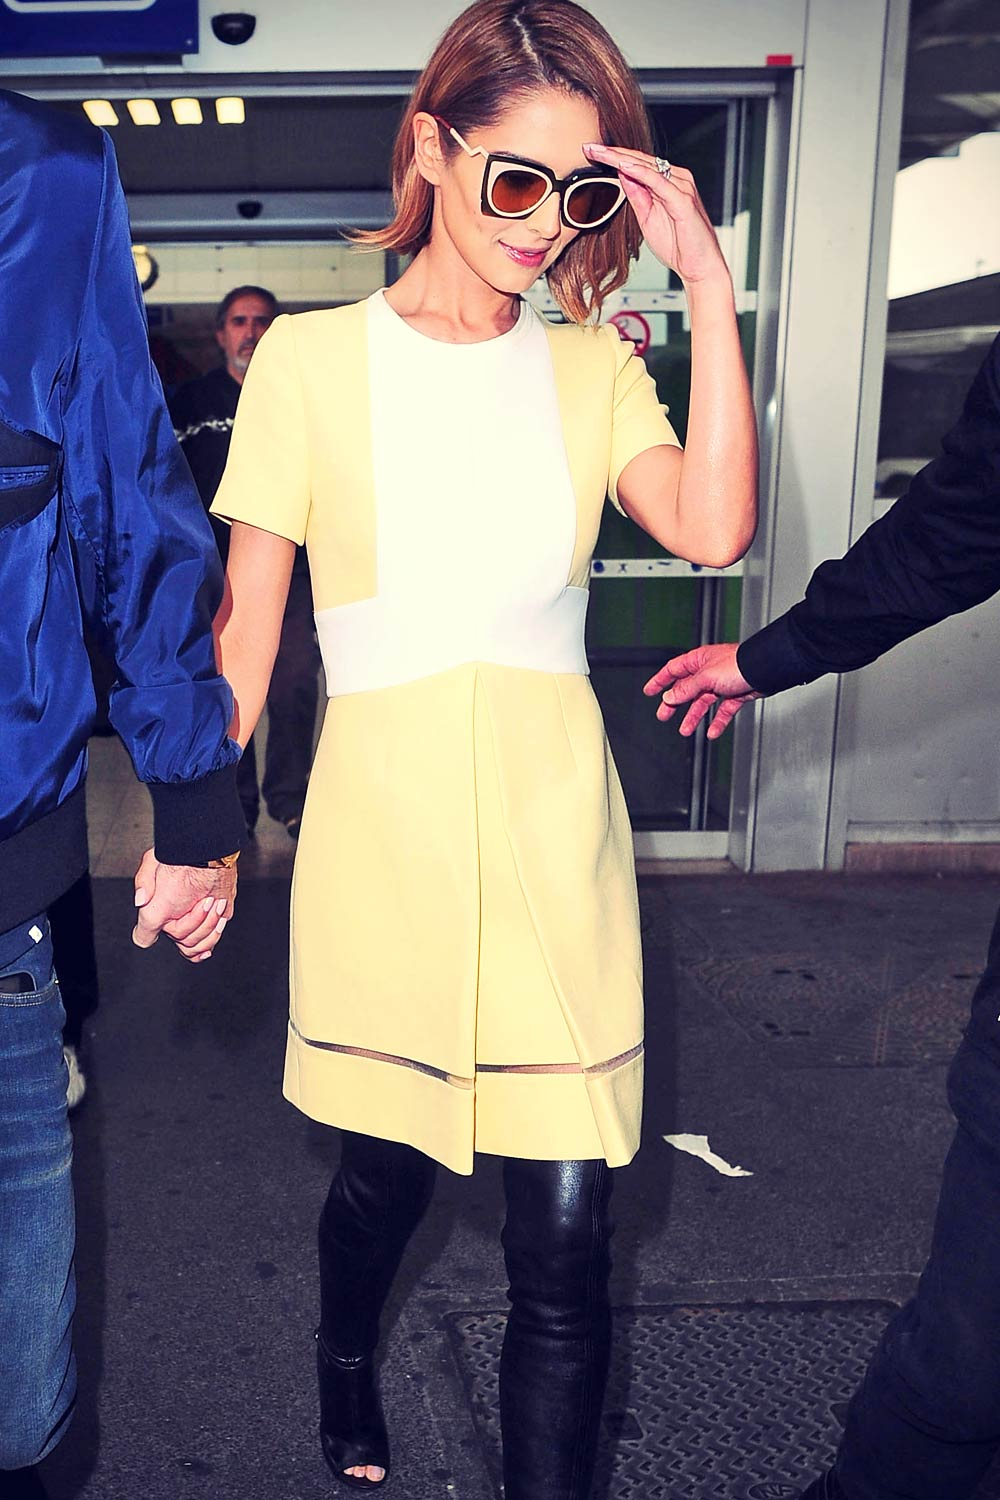 Cheryl Cole at Nice Cote d'Azur Airport in France